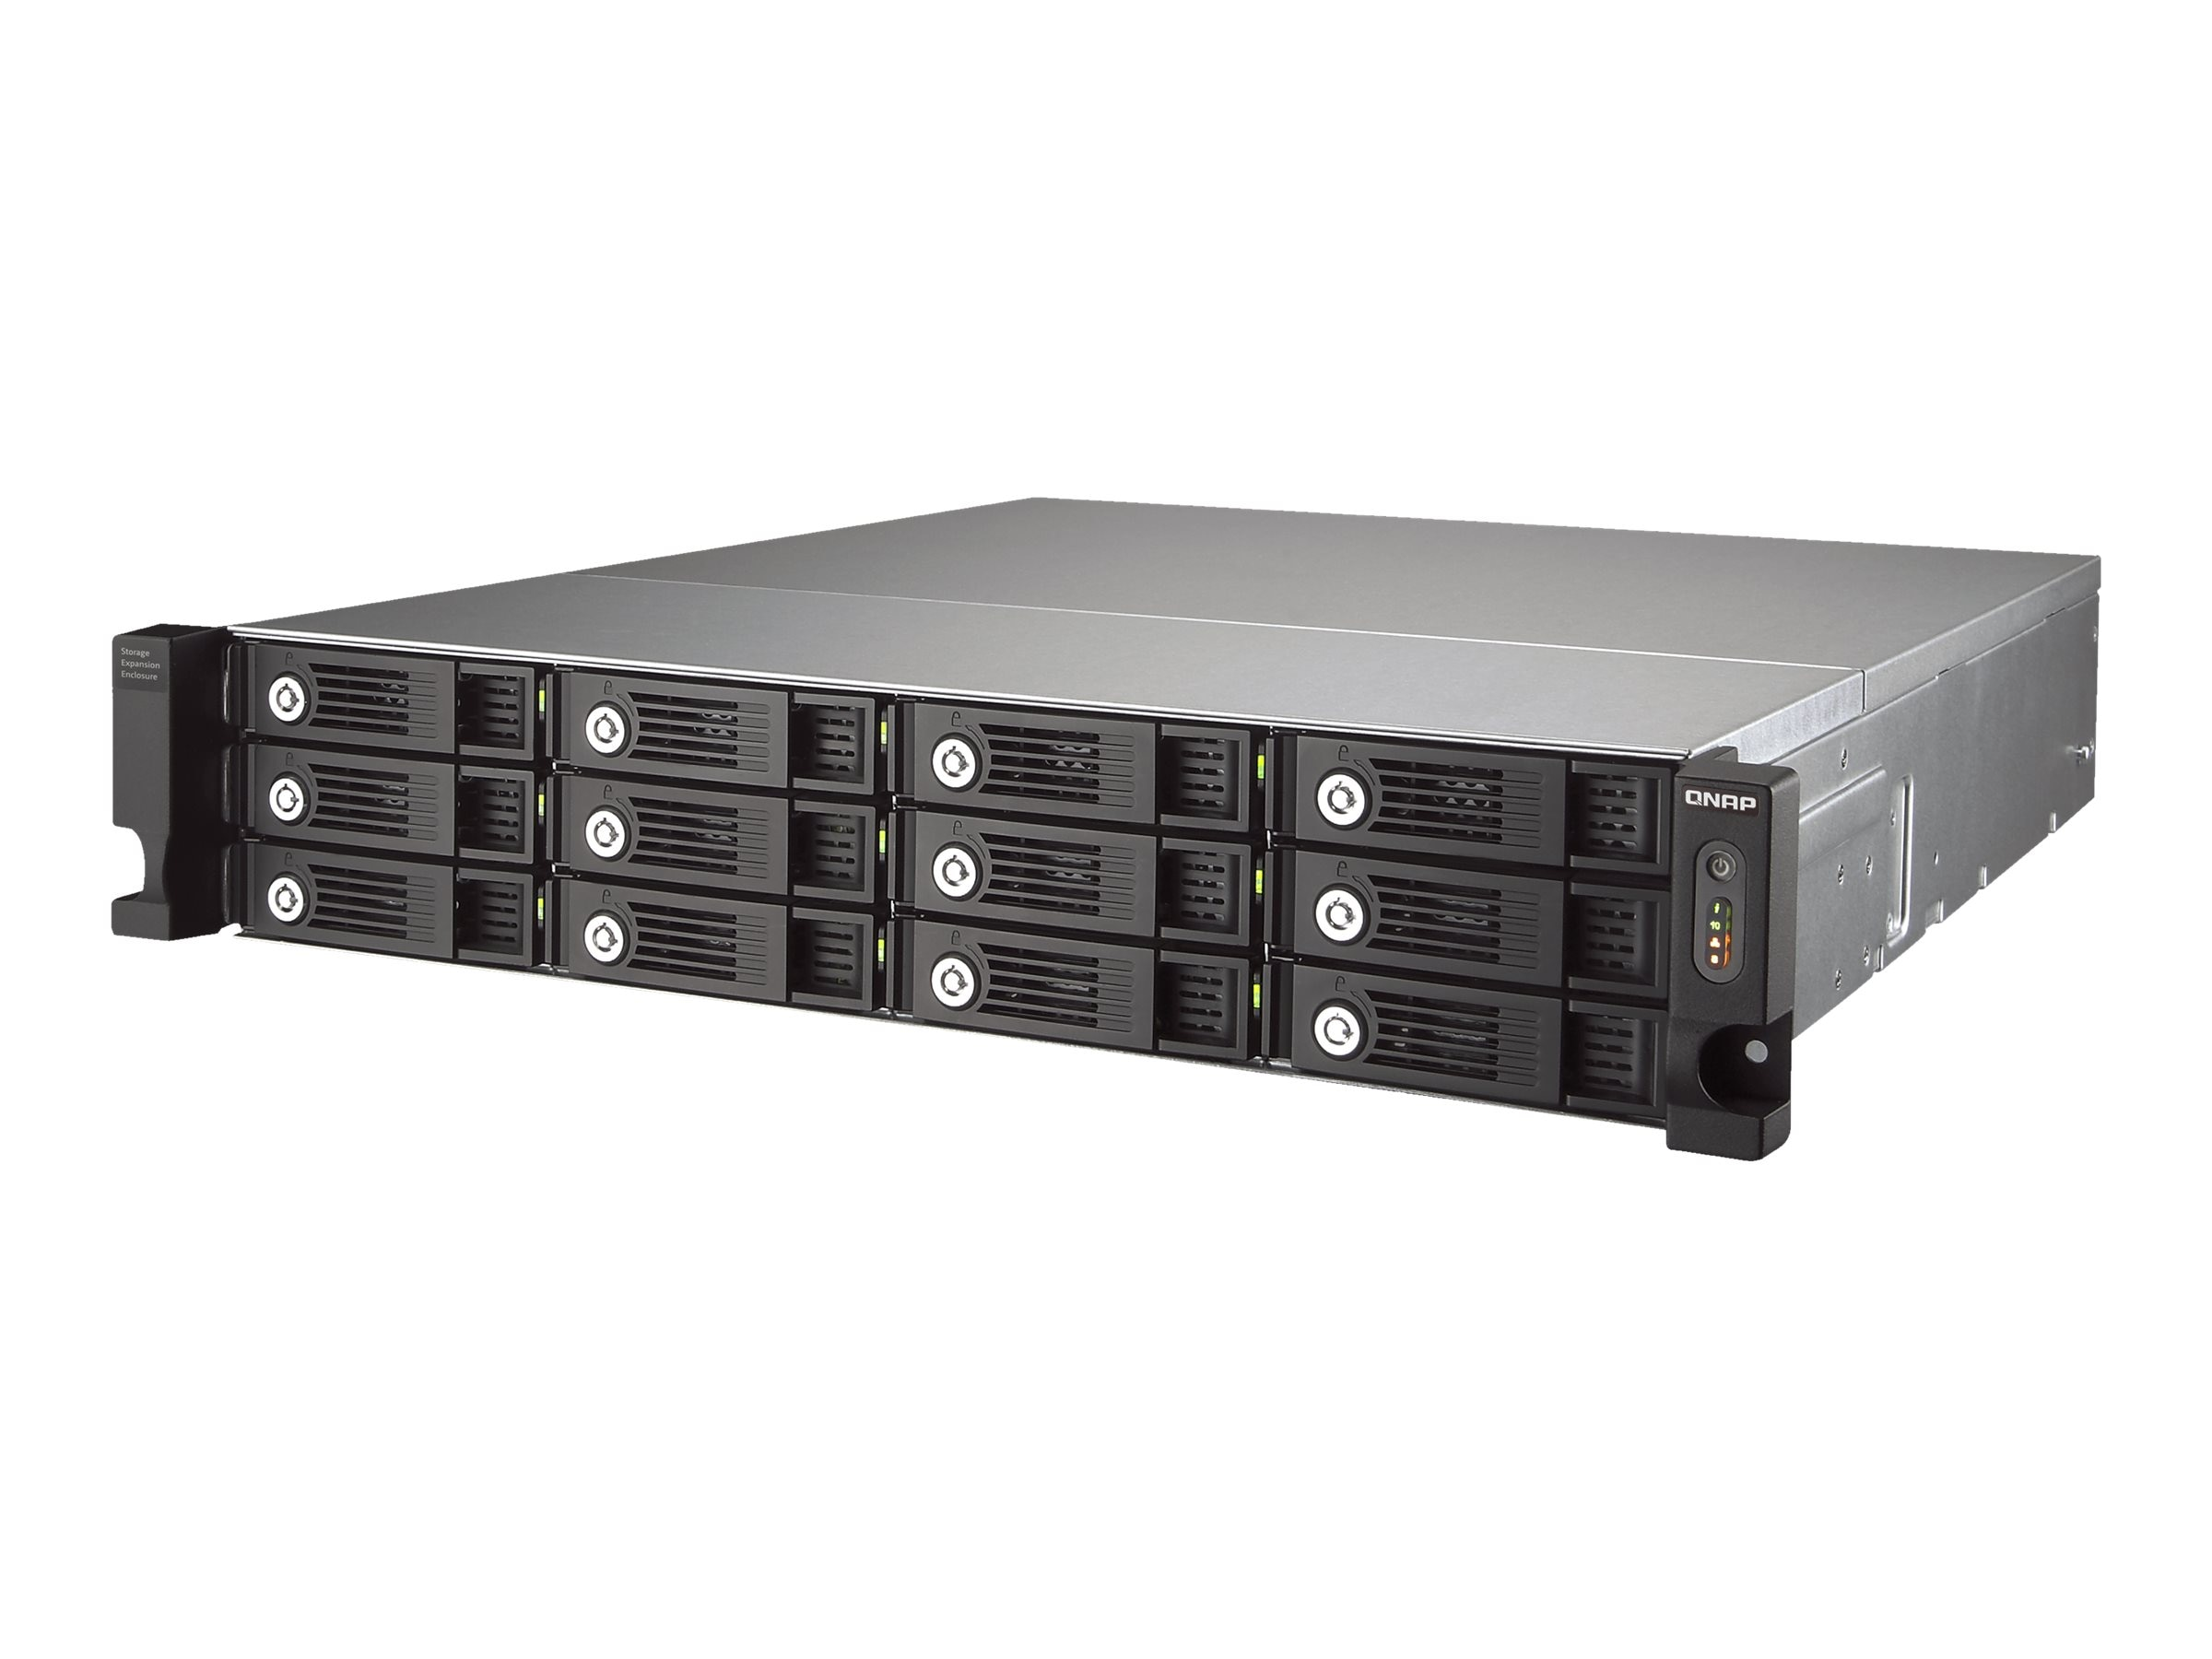 Qnap 12-Bay SATA 6Gb s Rack Expansion Enclosure, UX-1200U-RP-US